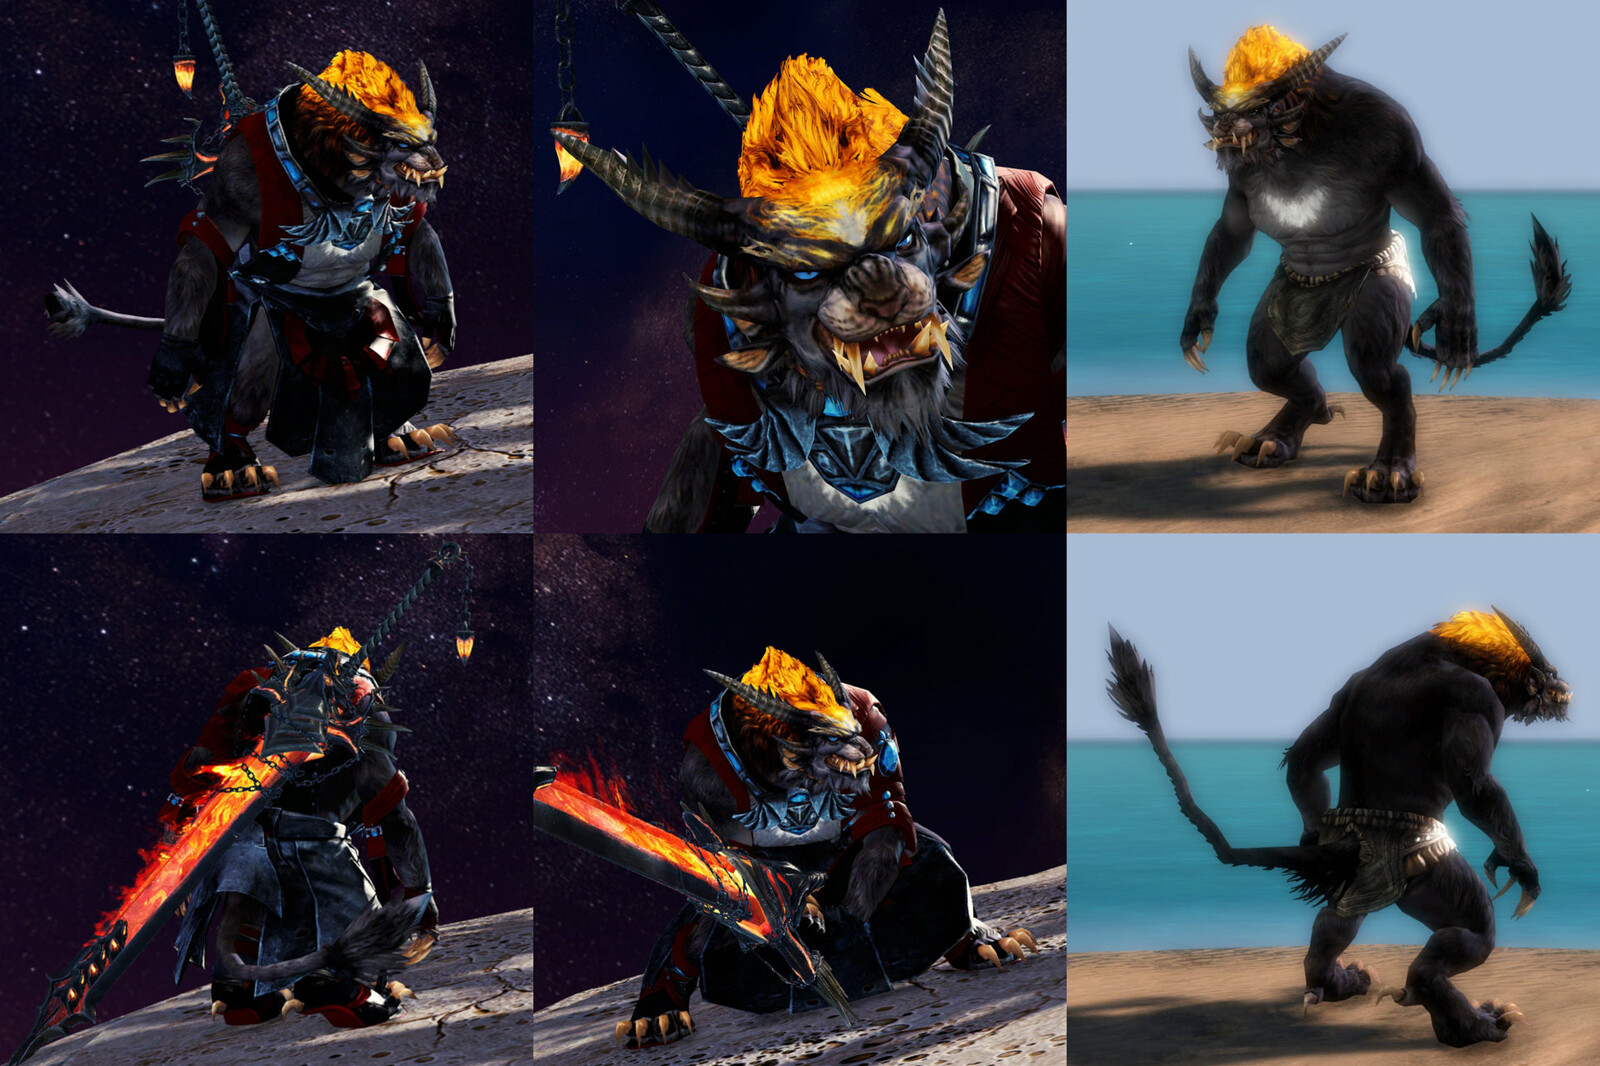 Original character from Guild Wars 2